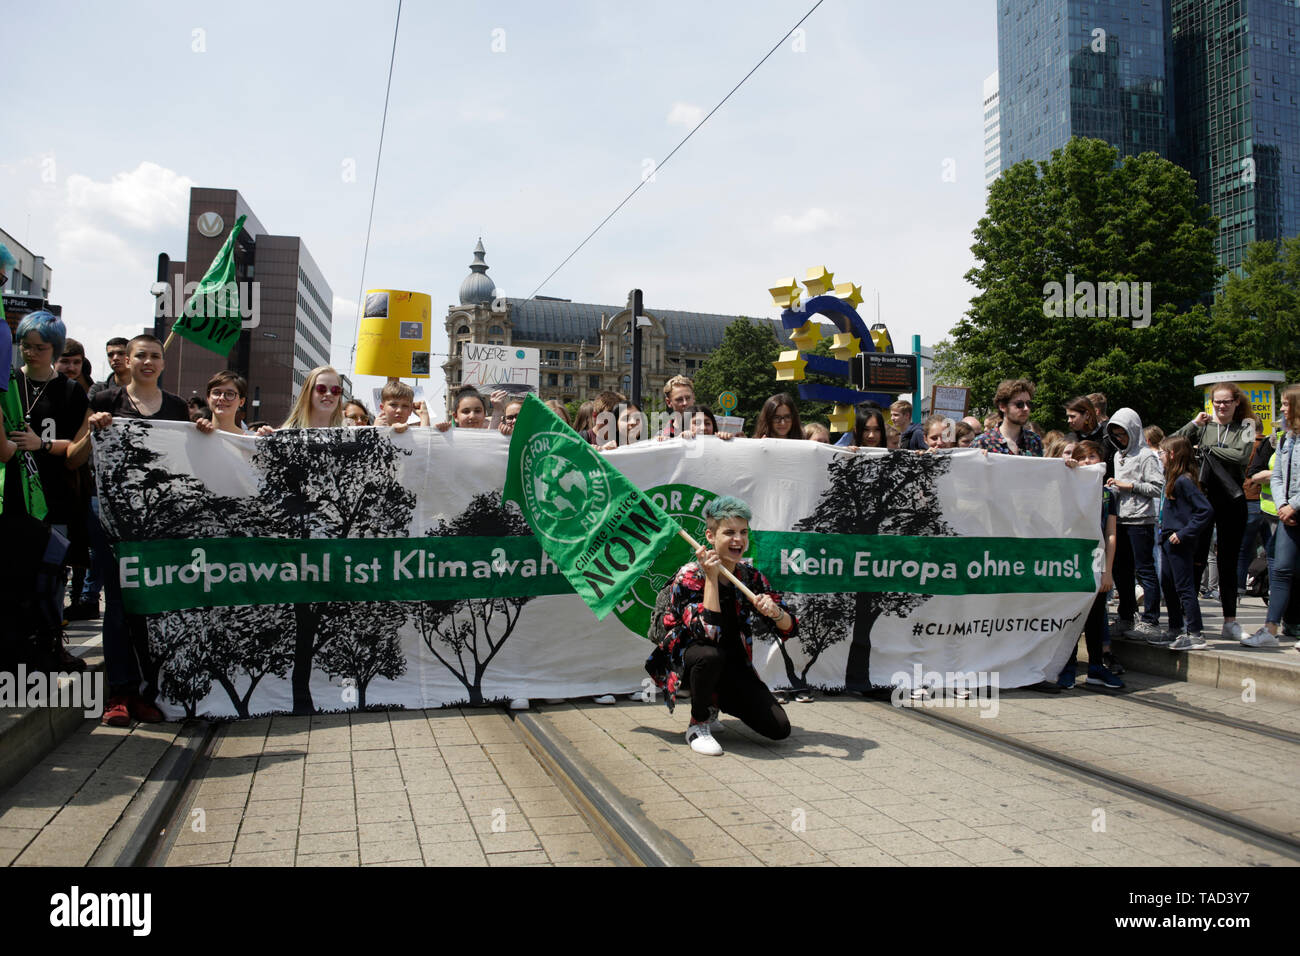 Frankfurt, Germany. 24th May 2019. The people at the banner at the front of the march pose for a picture. The large Euro sign can be seen in the background. Around 4,500 young people marched through Frankfurt to the European Central Bank, to protest against the climate change and for the introduction of measurements against it. The protest took place as part of an Europe wide climate strike, two days ahead of the 2019 European elections. - Stock Image